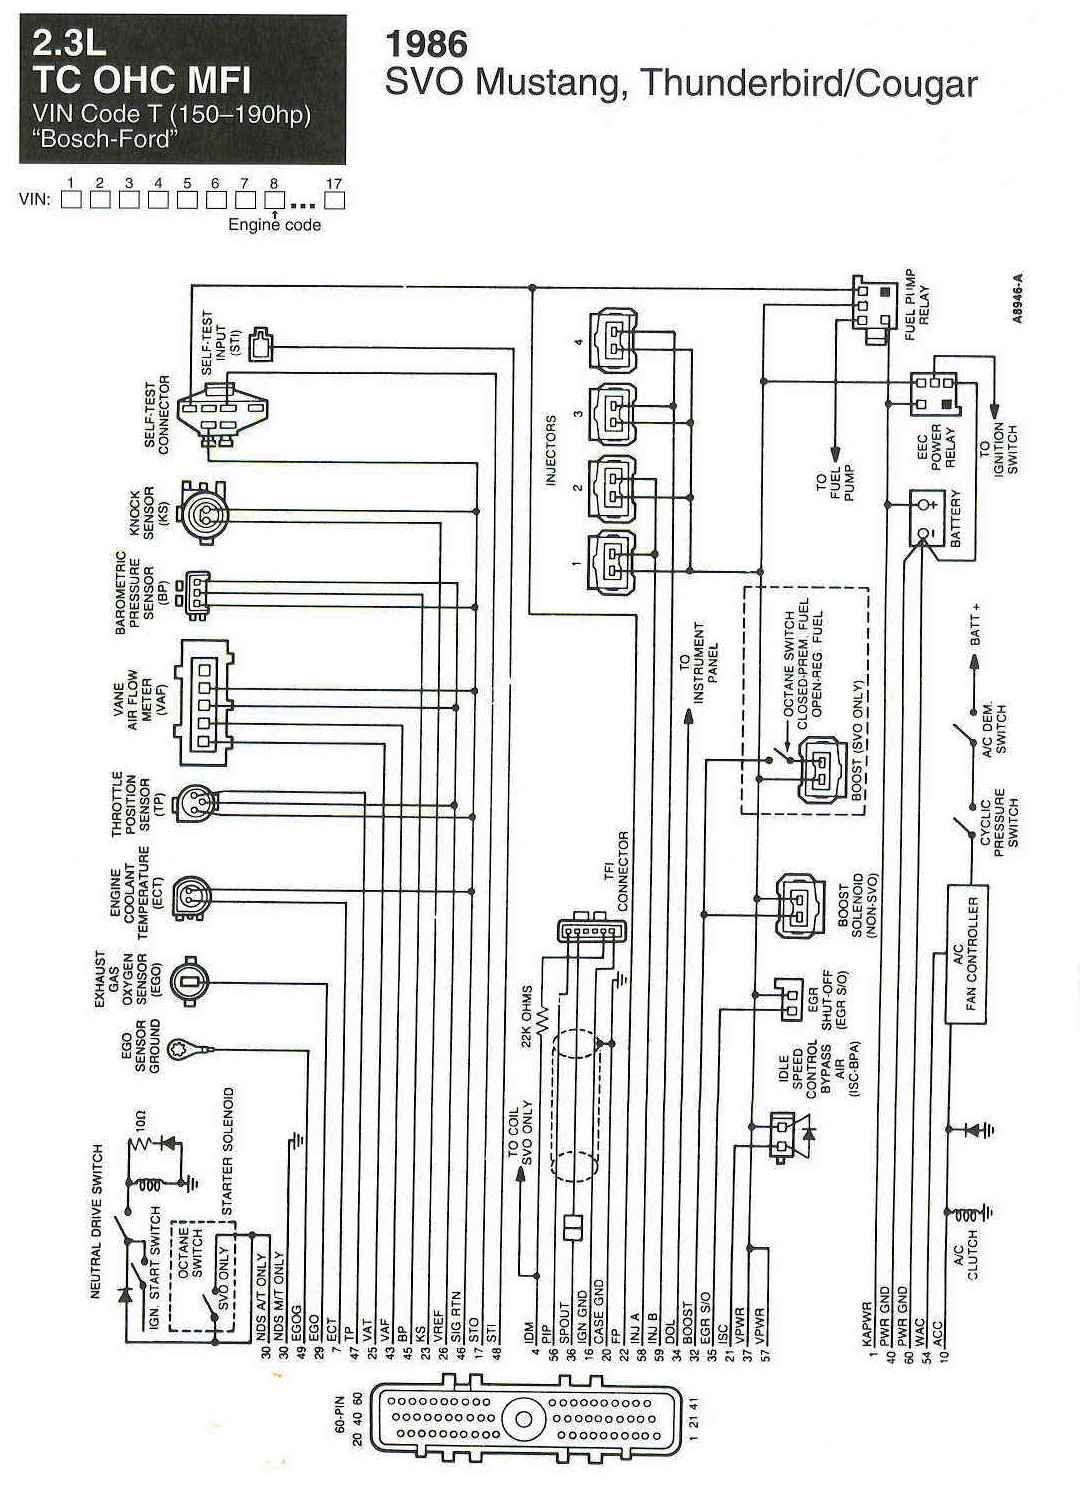 svo wiring harness   18 wiring diagram images